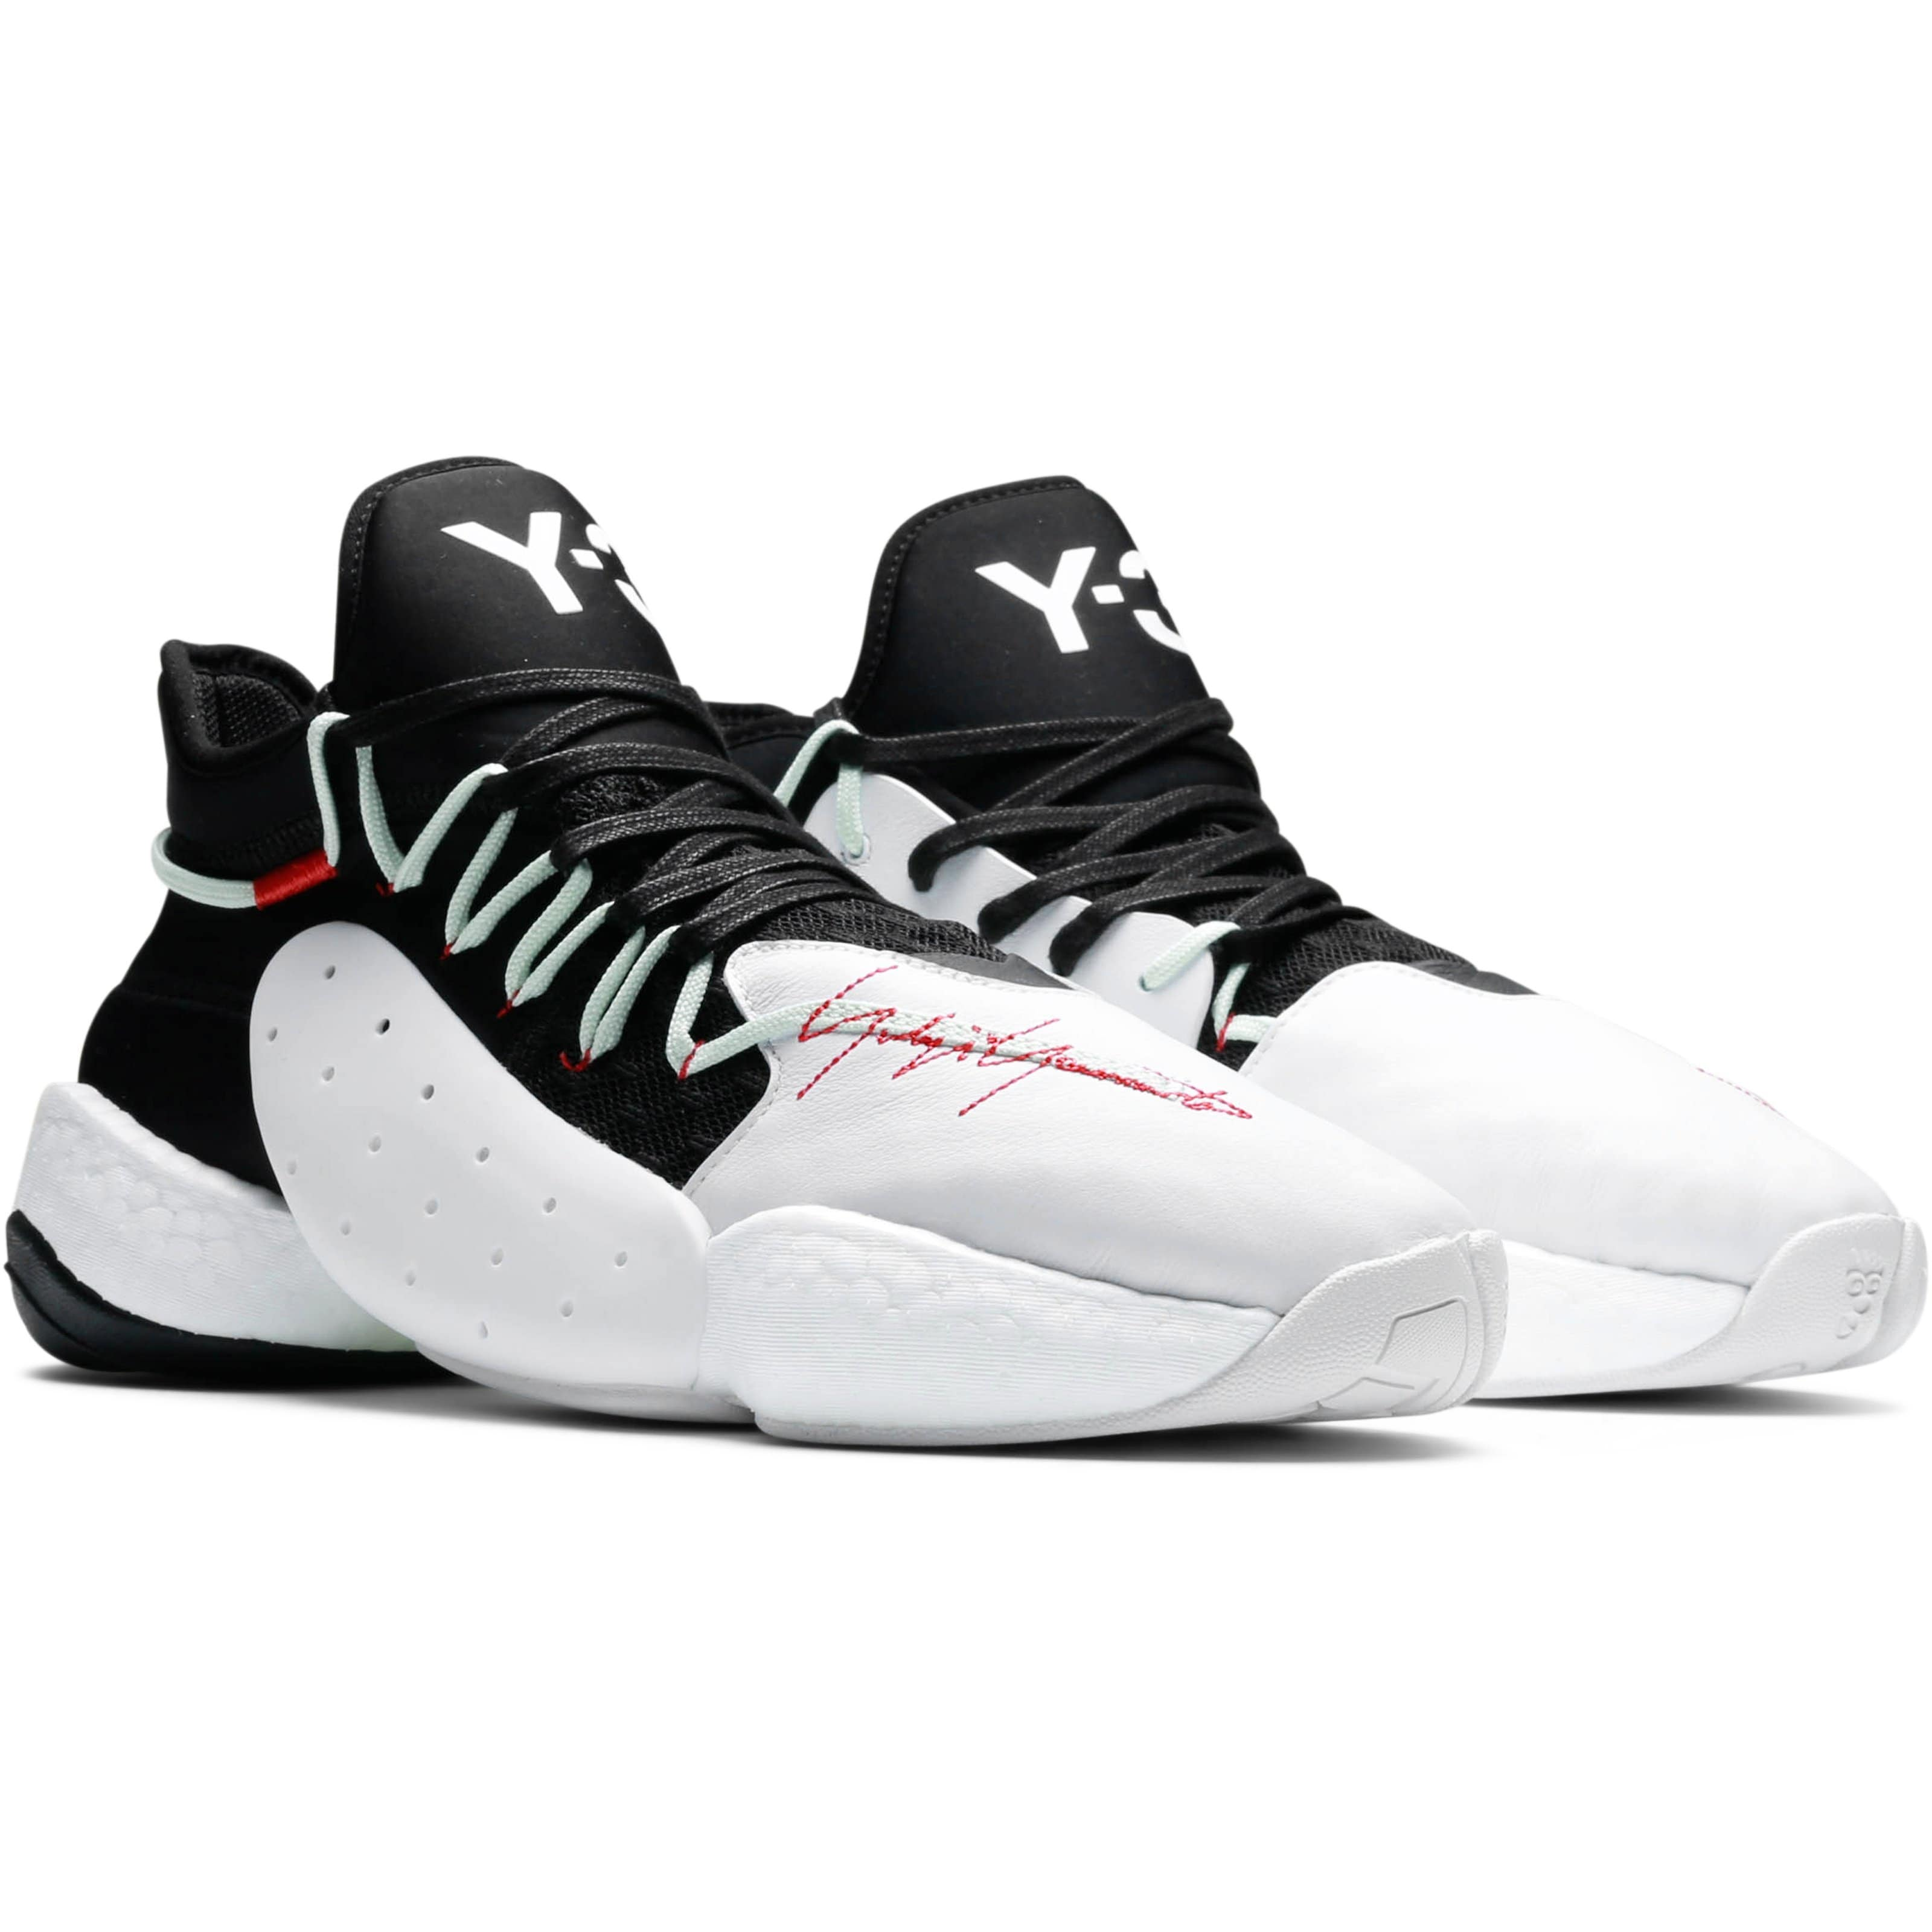 Adidas Y-3 Shoes Y-3 BYW BBALL